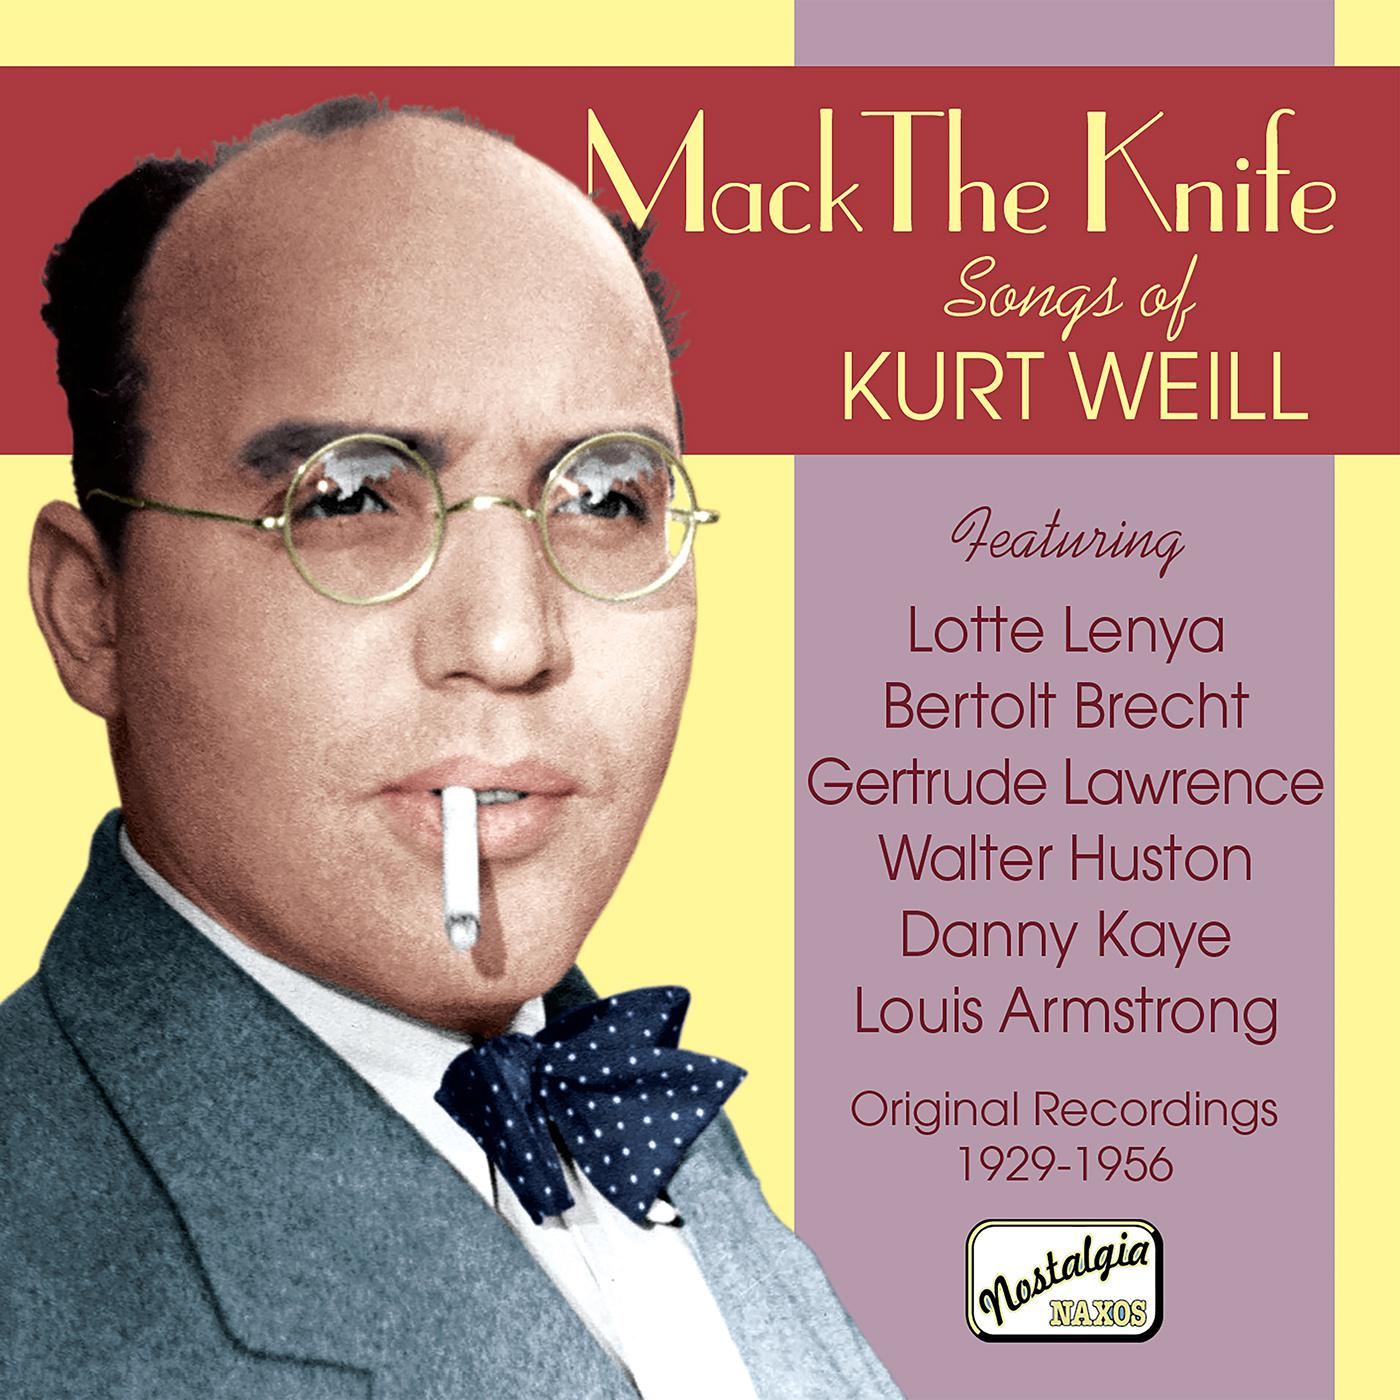 the life and musical works of german composer kurt weill Hindemith collaborated with kurt weill on the music for a radio the german paul hindemith german composer, the predominant musical figure in the.